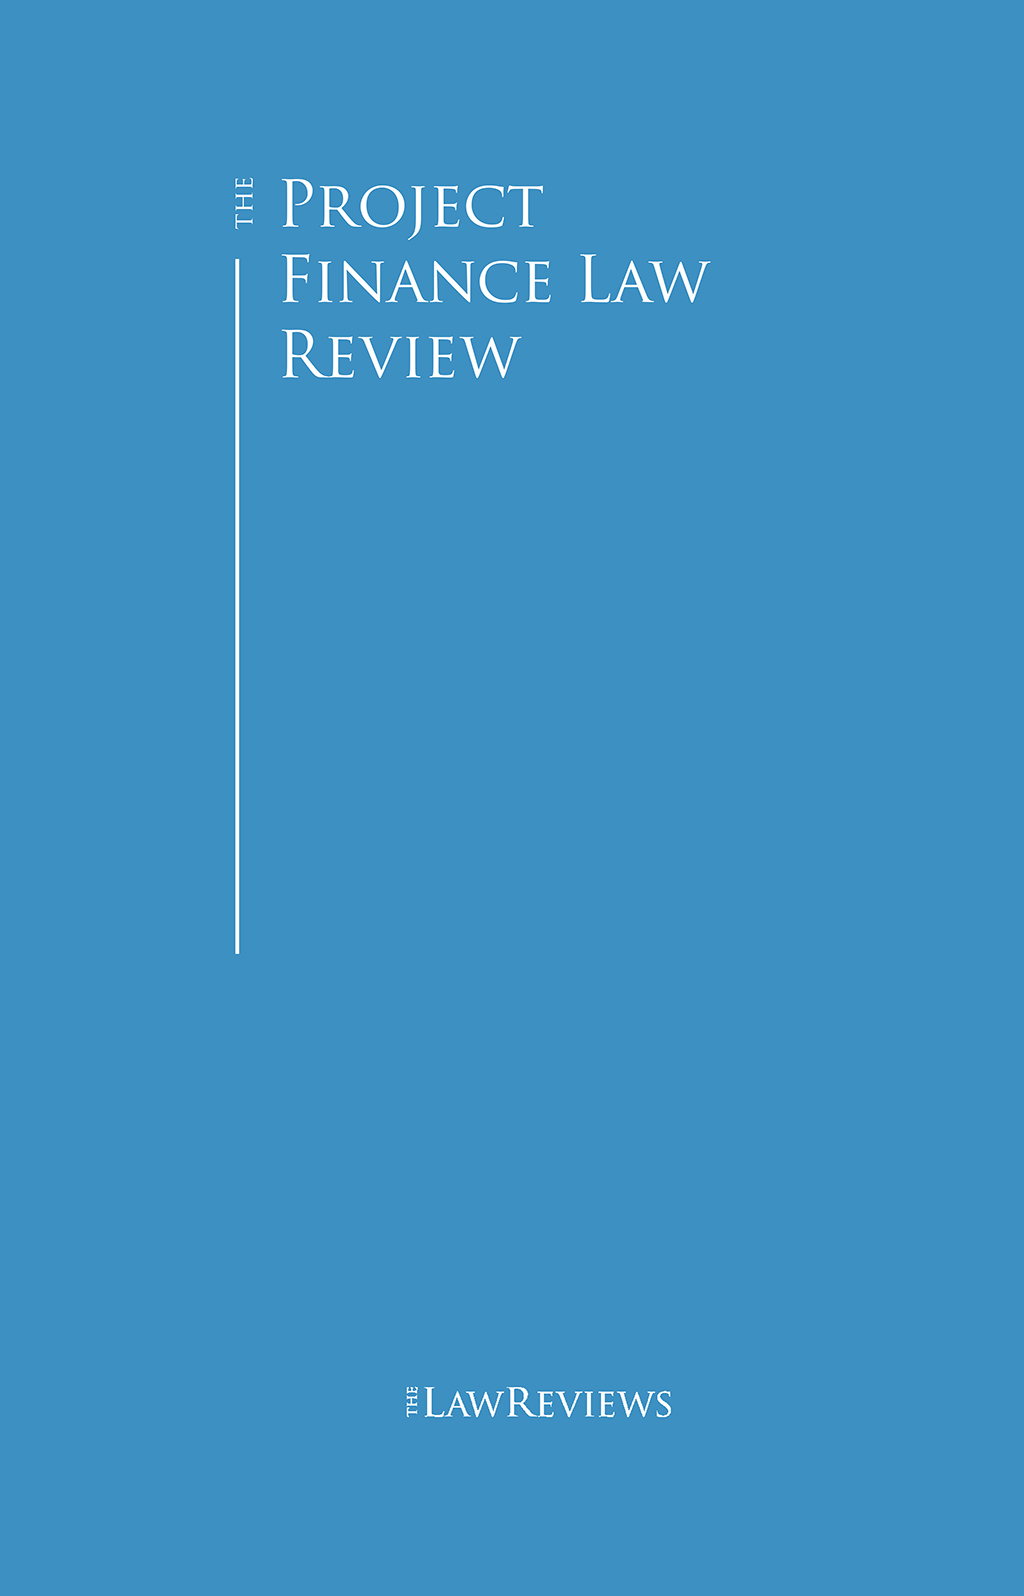 The Project Finance Law Review